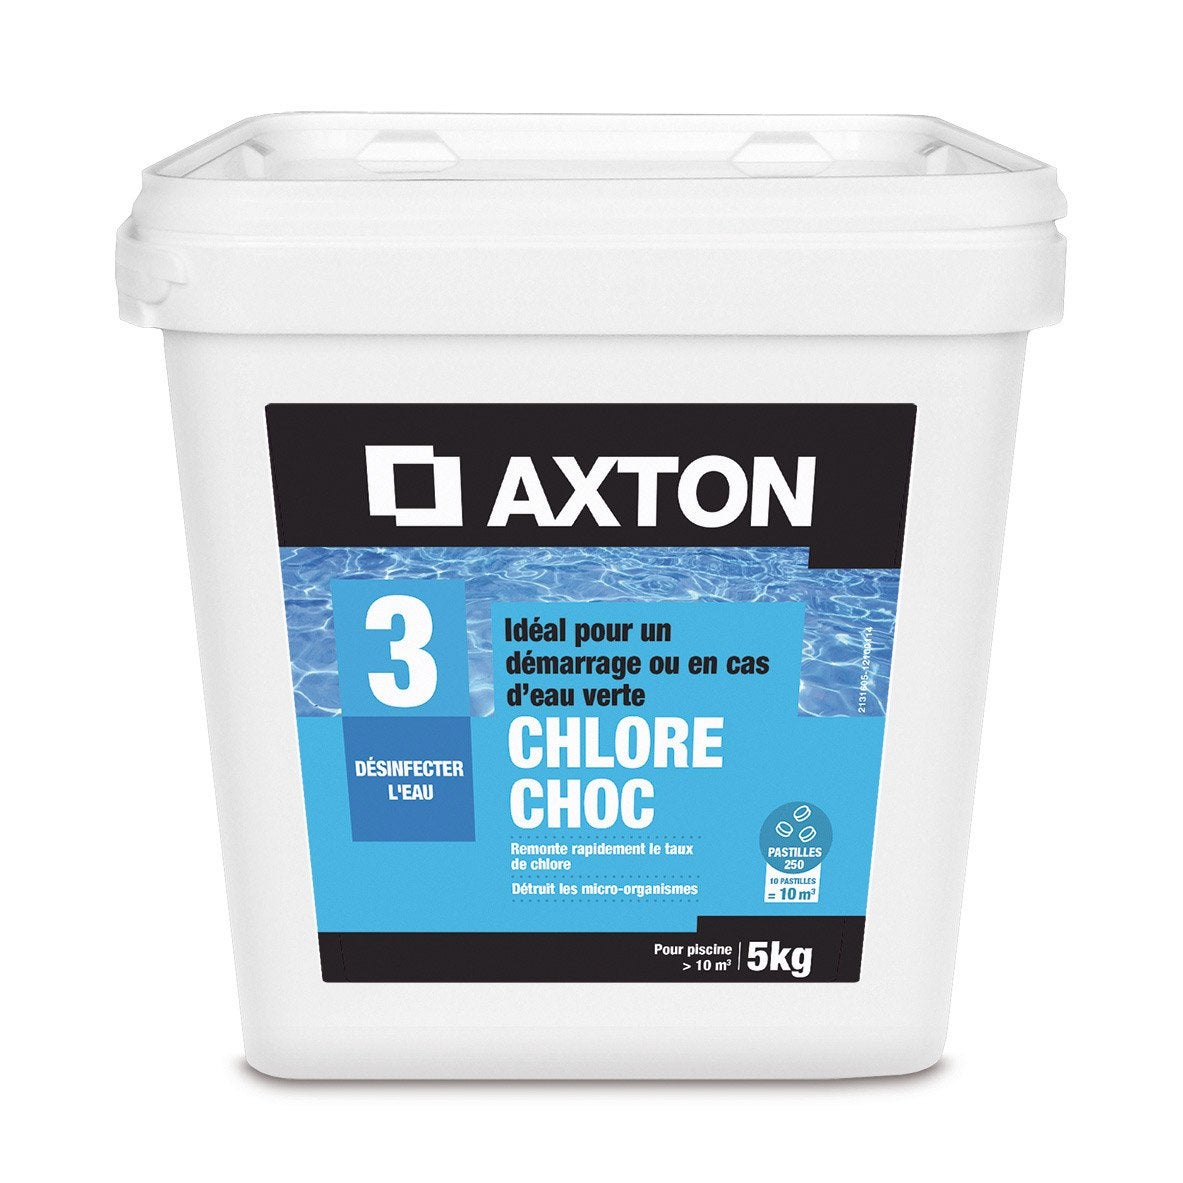 Chlore choc piscine axton pastille 5 l 5 kg leroy merlin for Traitement de choc piscine